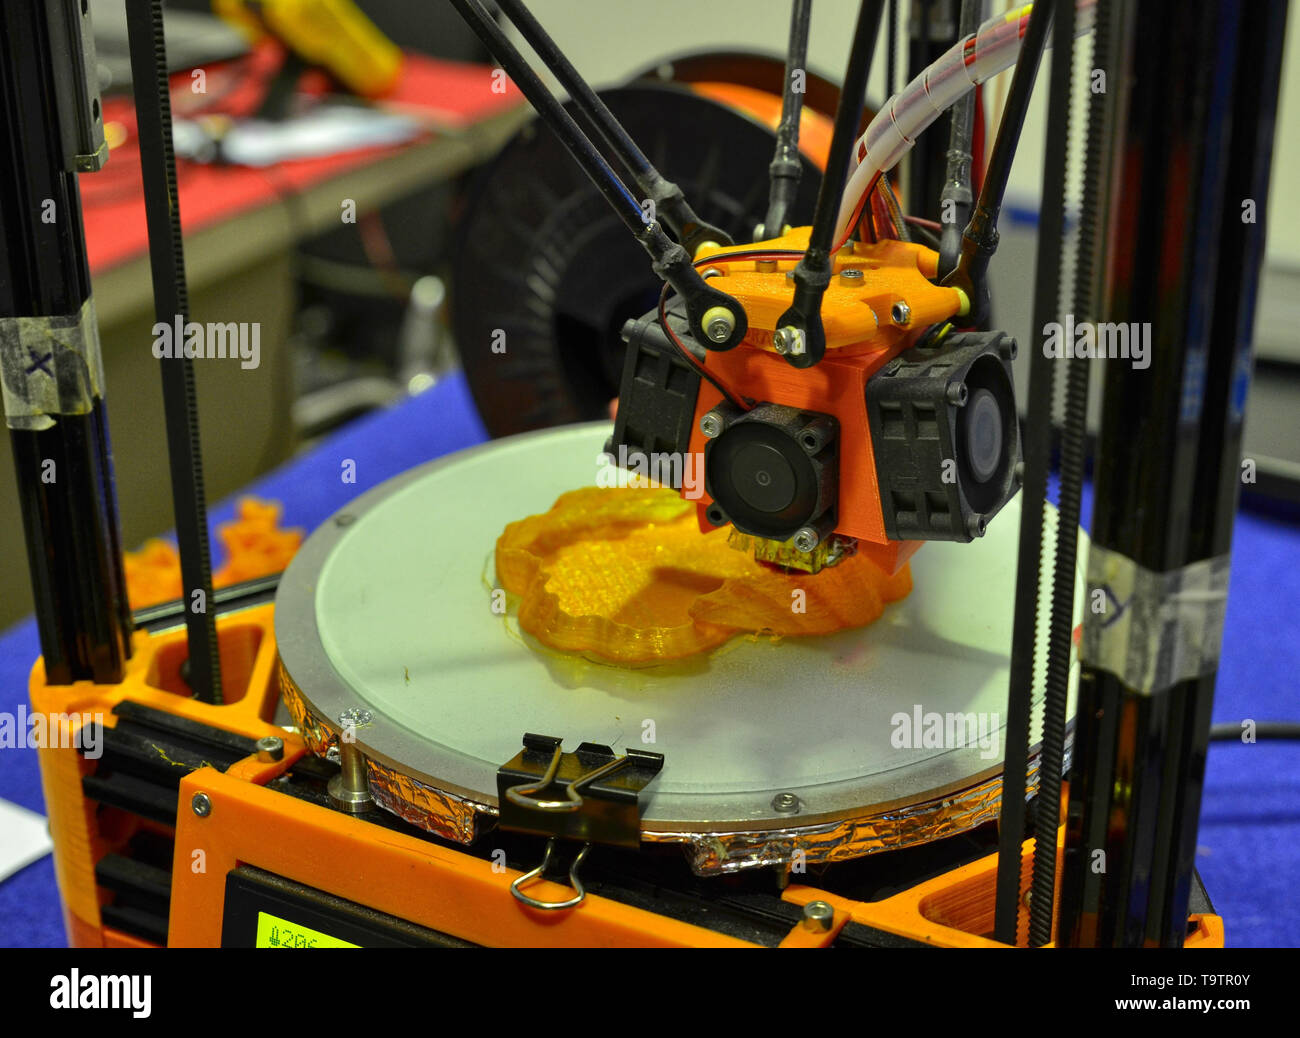 Turin, Piedmont, Italy. June 3 2018. At the Fablab in Turin a demo with a three-dimensional printer at work. - Stock Image